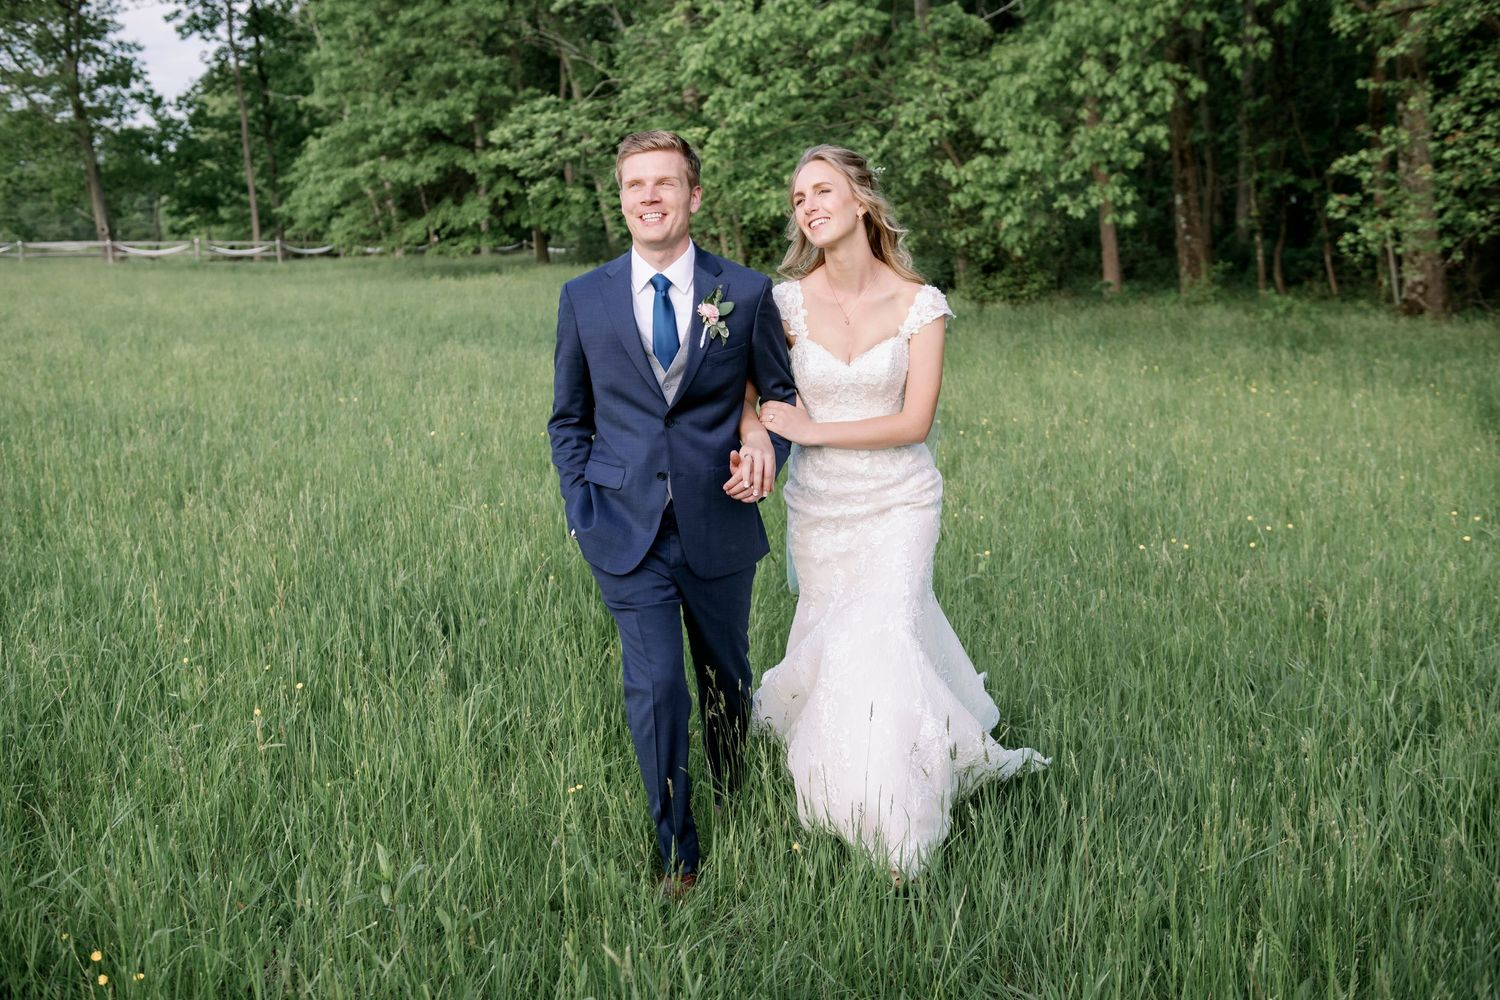 bride and groom walking in field after backyard farm wedding